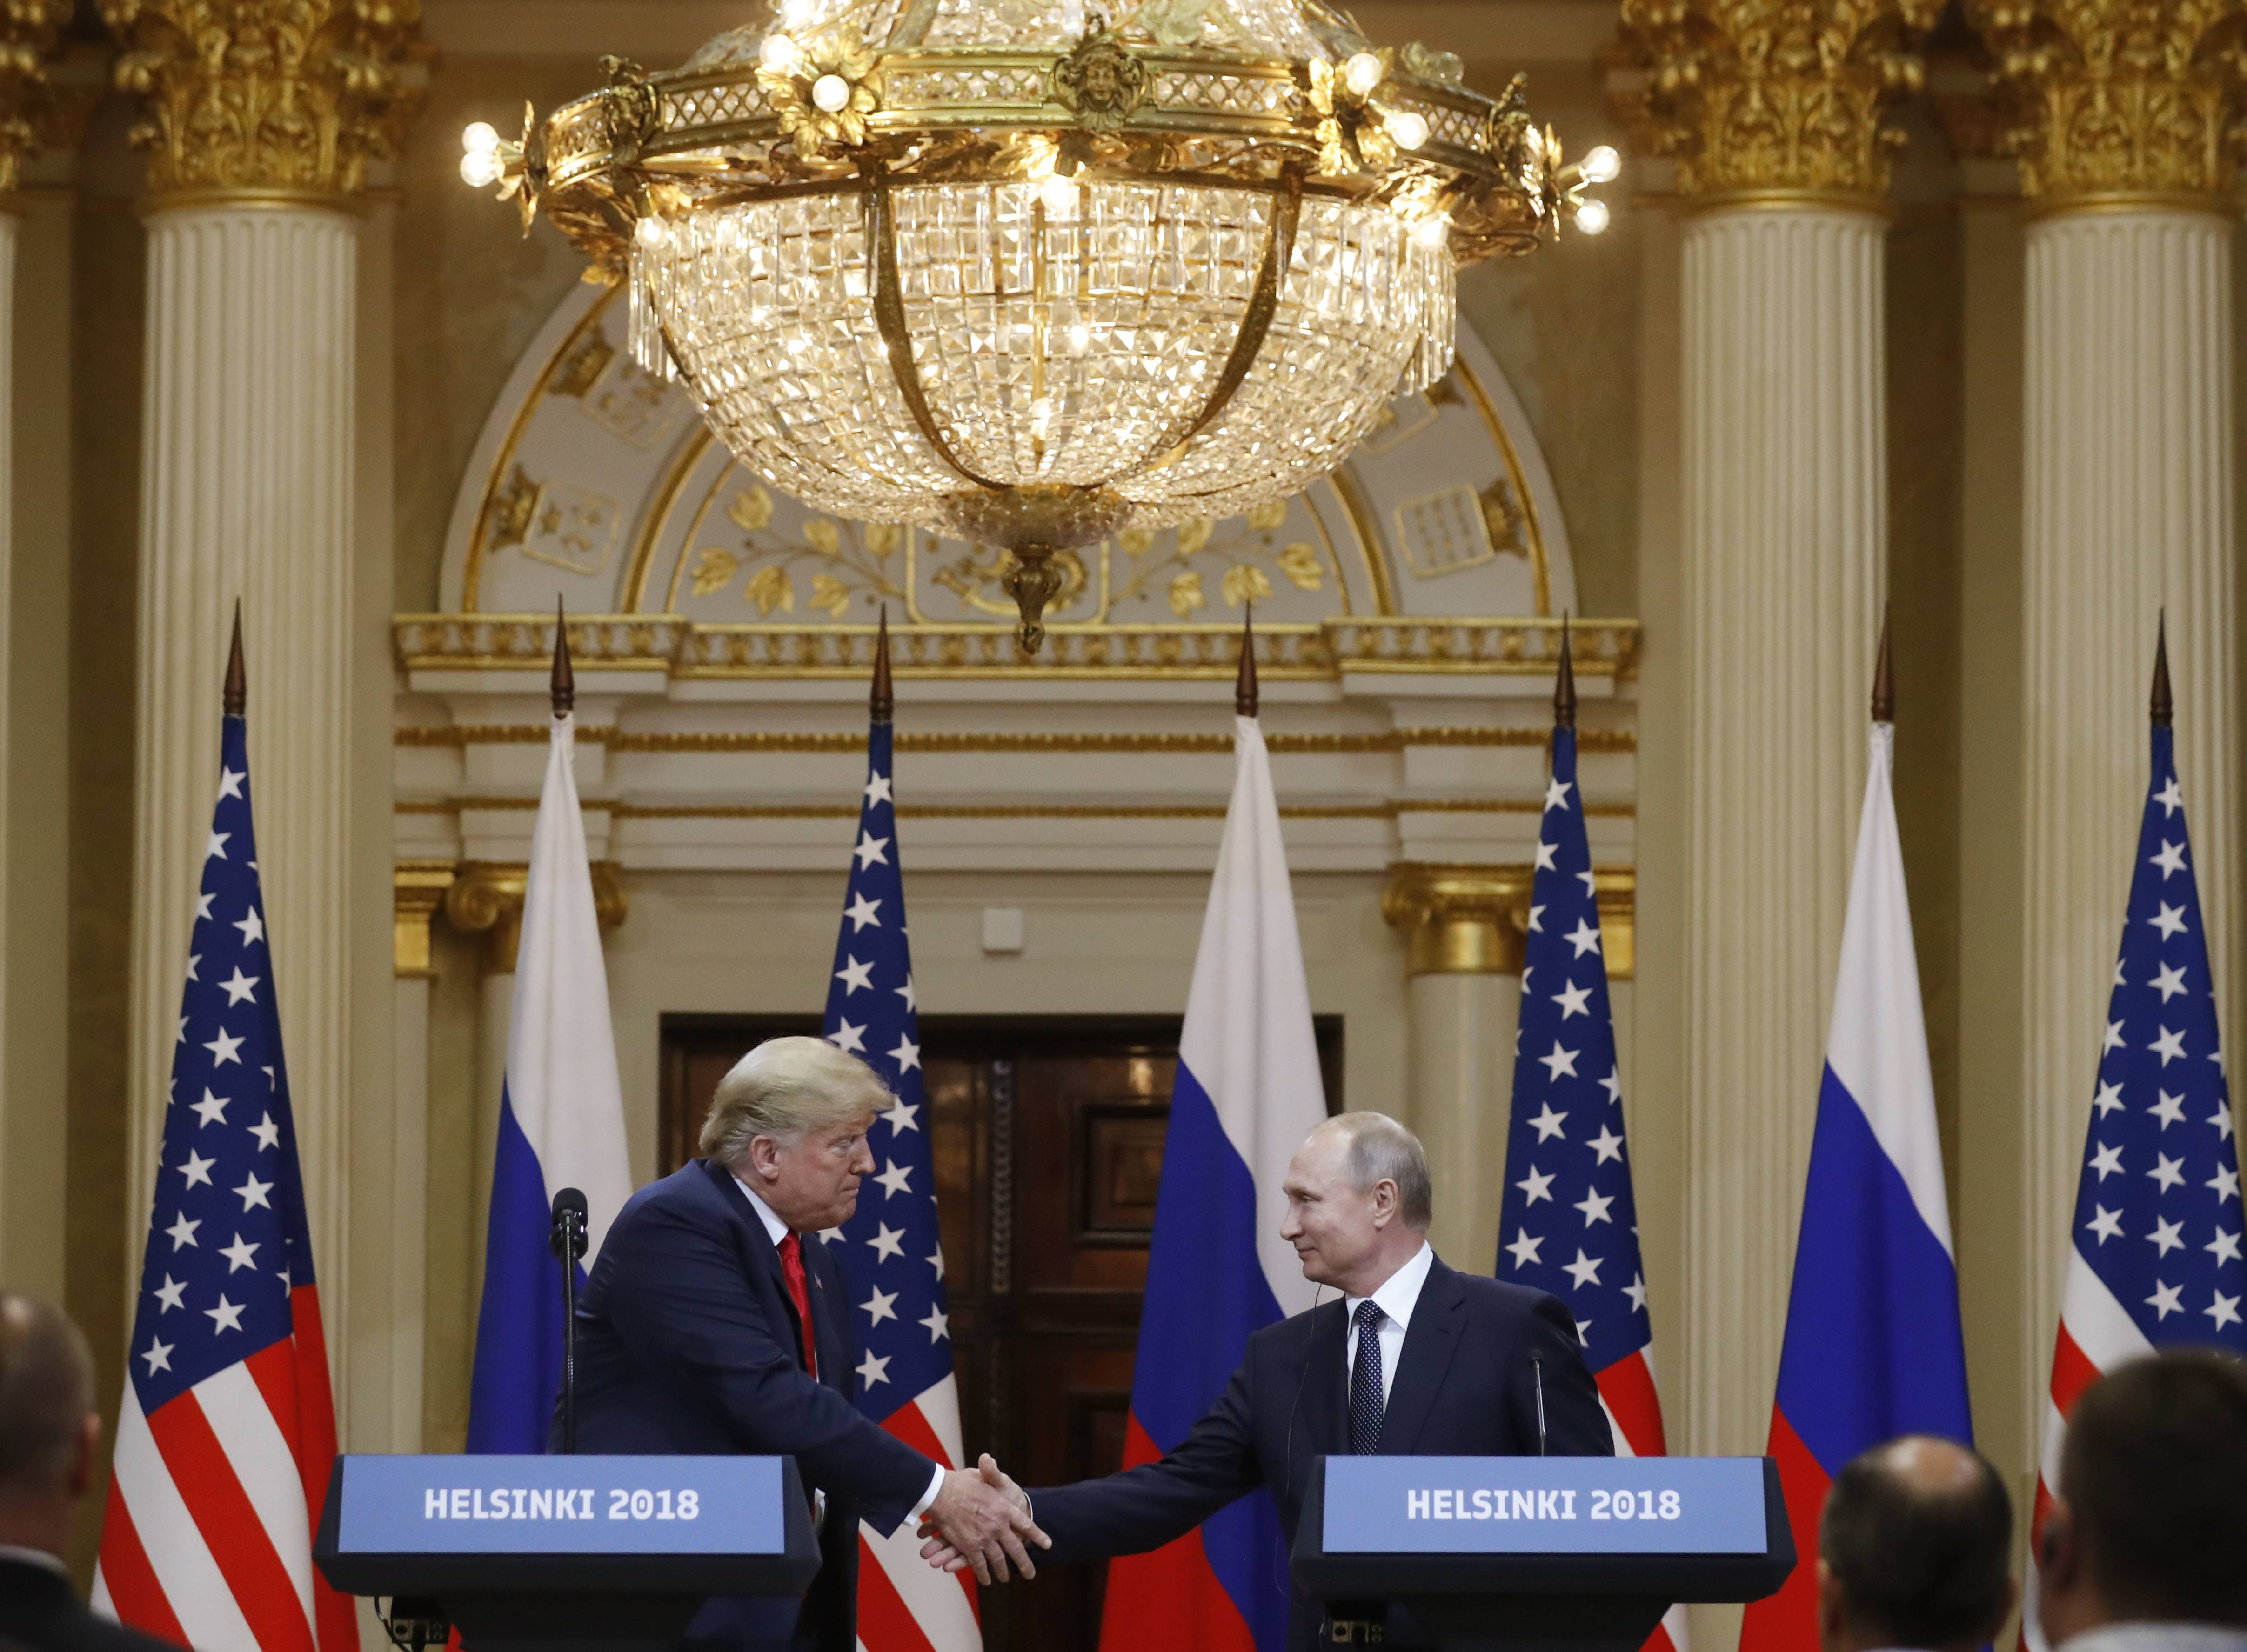 U.S. President Donald Trump, left, shakes hands MOnday with Russian President Vladimir Putin during a press conference after their meeting at the Presidential Palace in Helsinki, Finland.